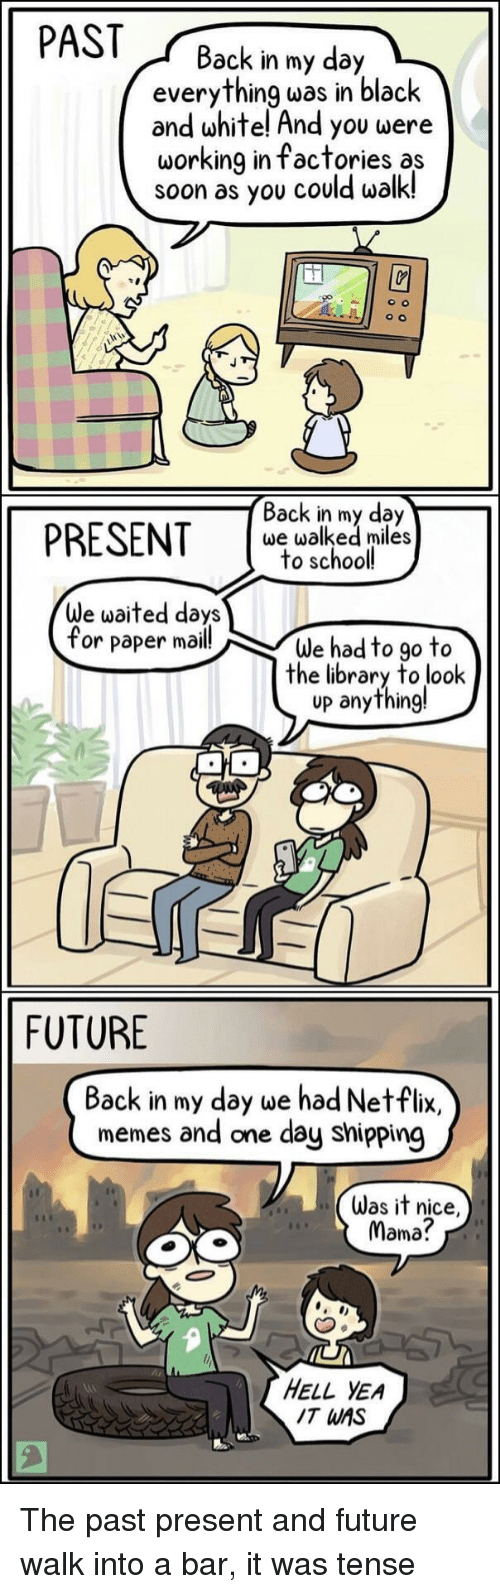 Future, Memes, and Netflix: PASTBack in my day  everything was in black  and white! And you were  working in factories as  soon as you could walk!  PRESENT s  Back in my day  we walked miles  to school  We waited days  for paper mail!  We had to go to  the library to look  up anything!  FUTURE  Back in my day we had Netflix,  memes and one day shipping  Was it nice,  Mama?  HELL YEA  IT WAS The past present and future walk into a bar, it was tense